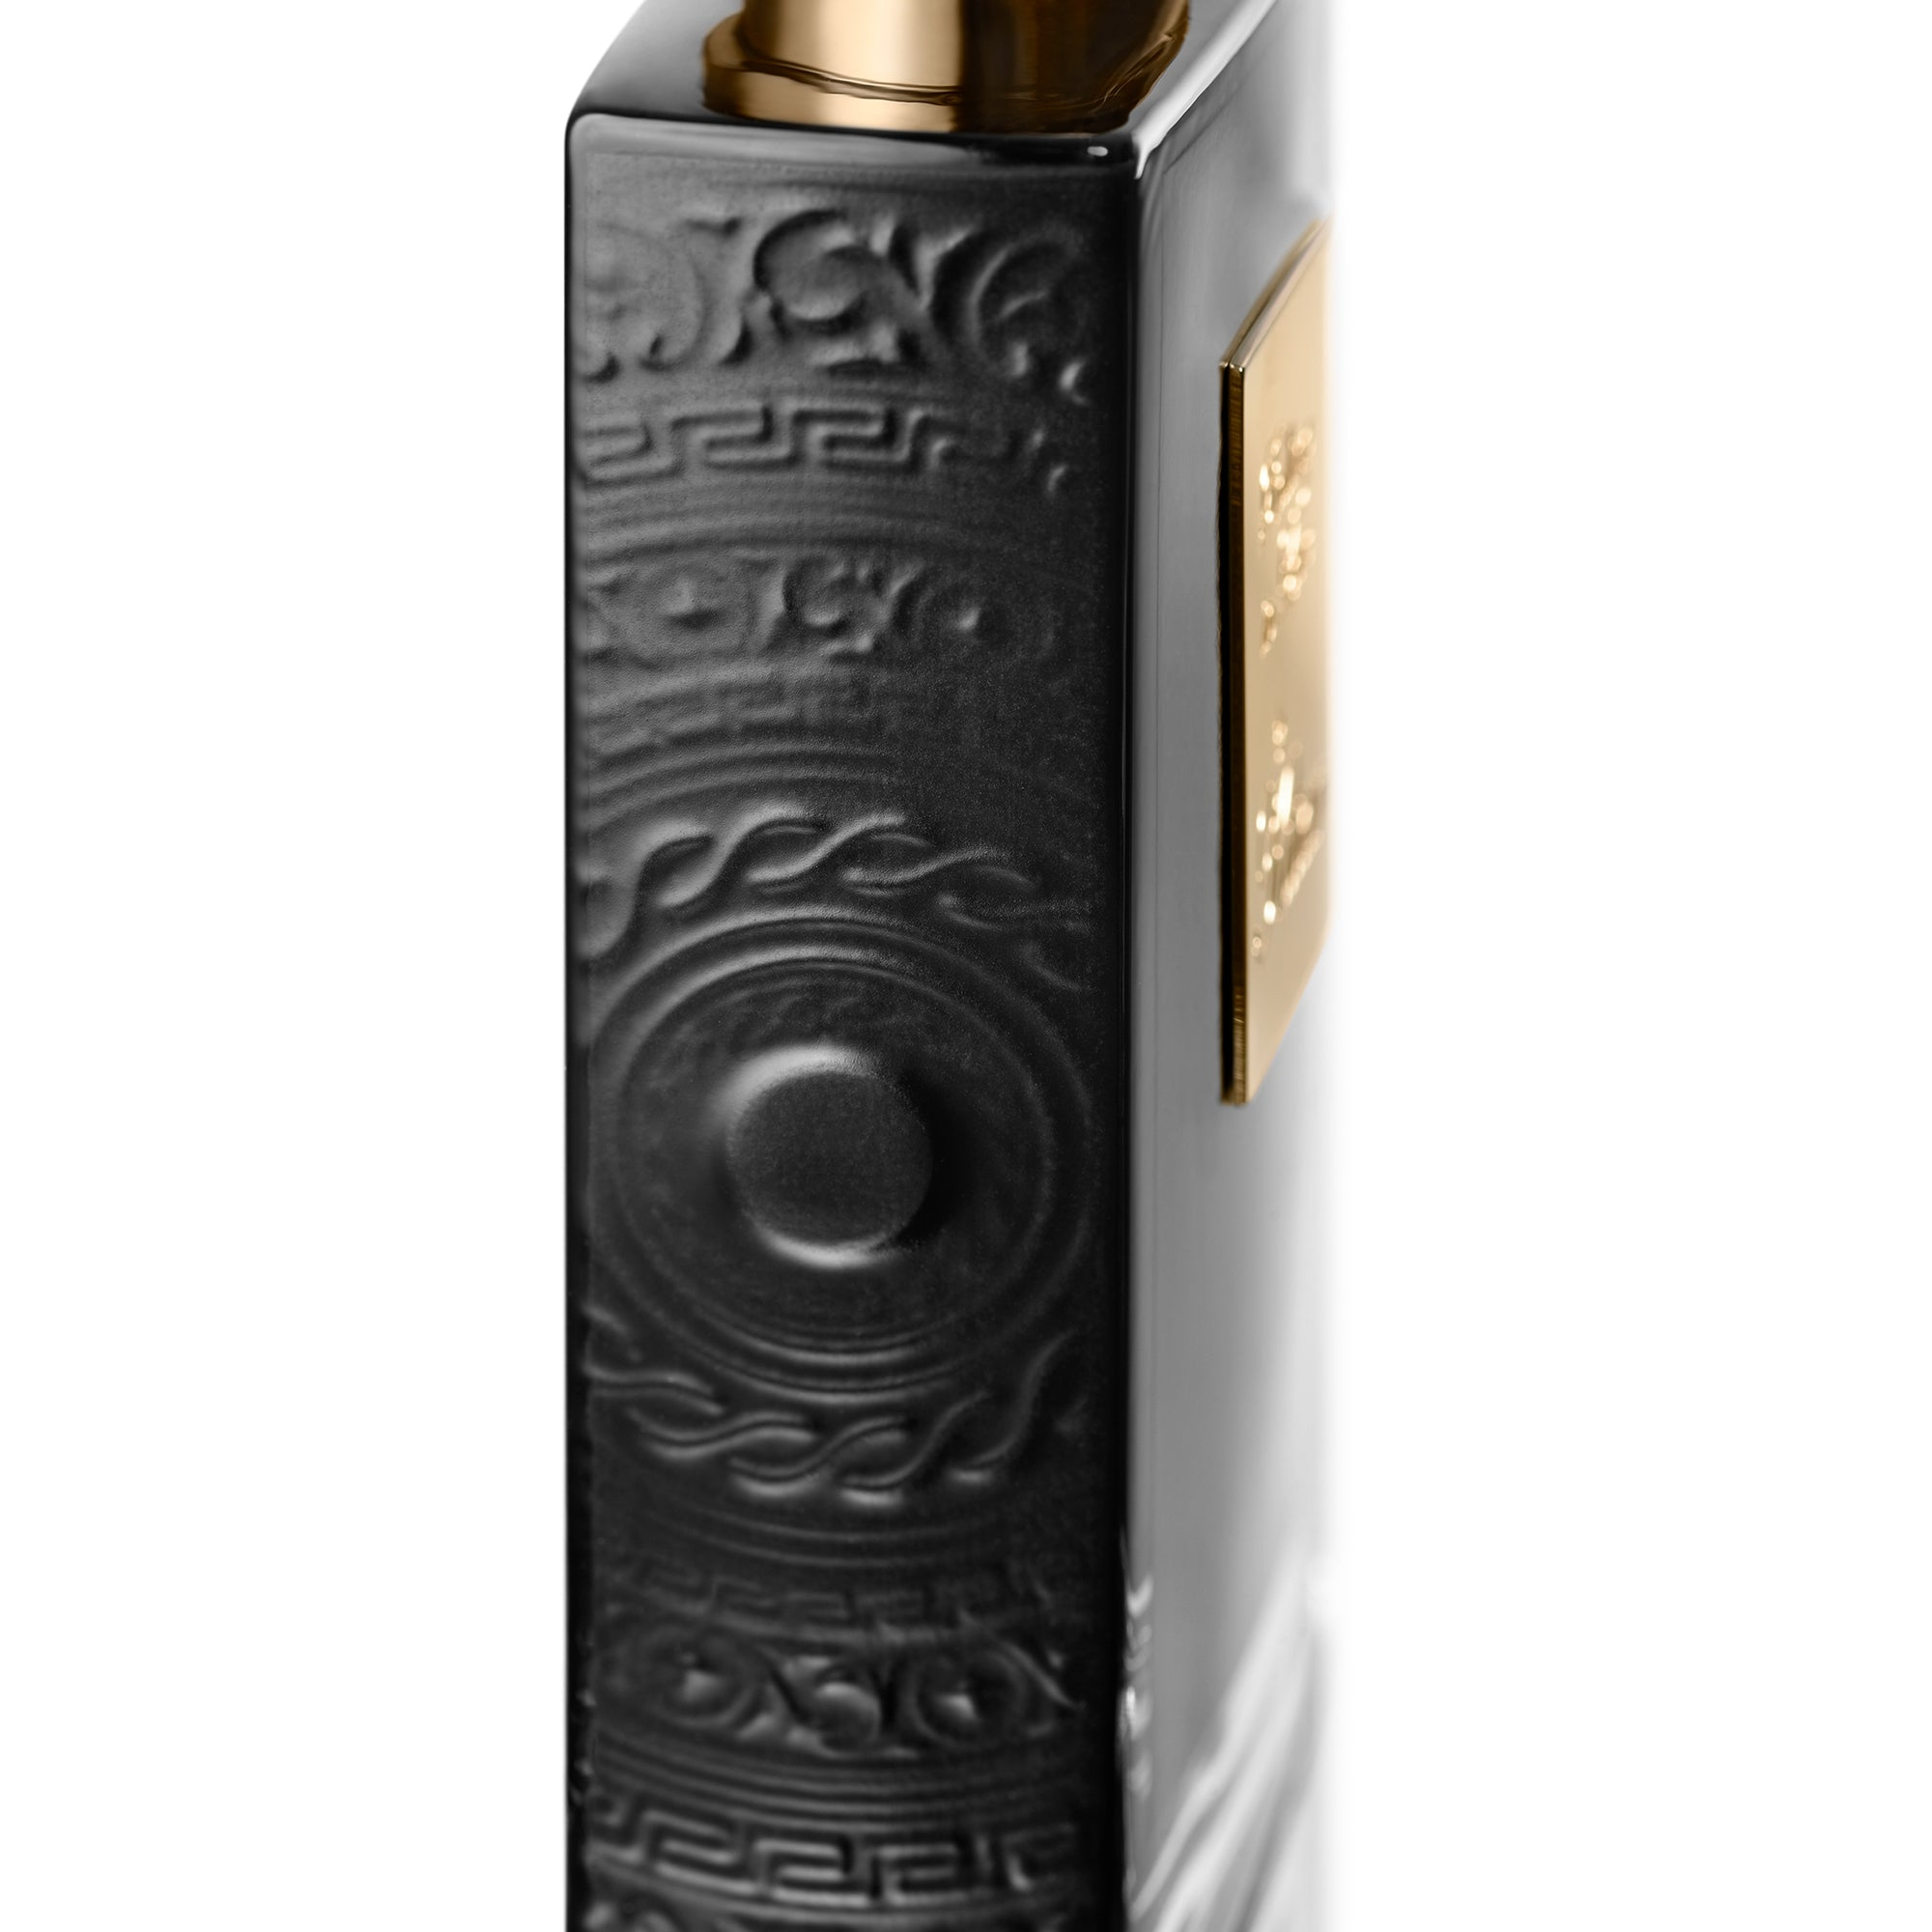 Gold Knight Vaporisateur 50ml